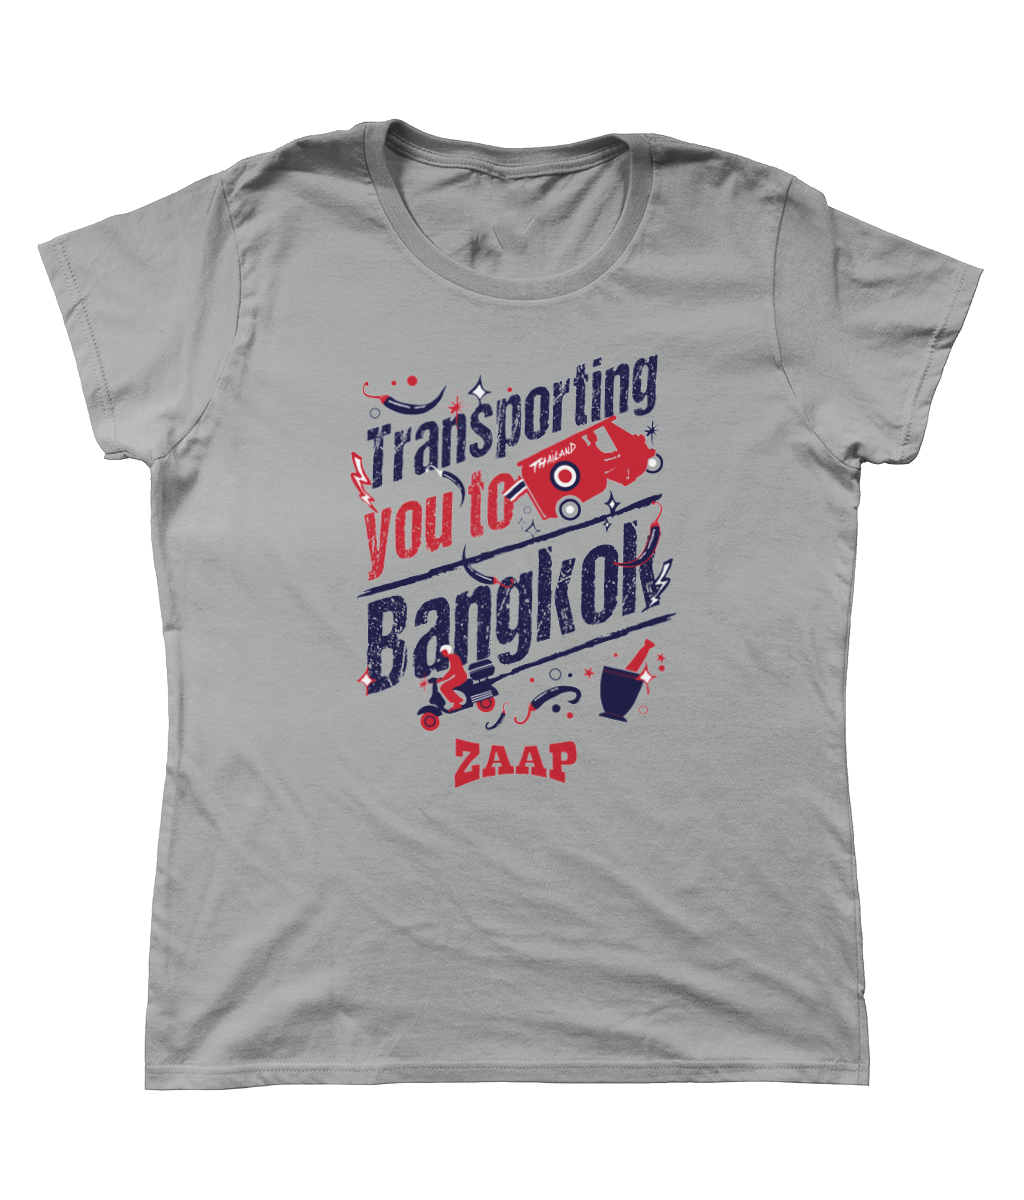 TRANSPORTING YOU TO BANGKOK